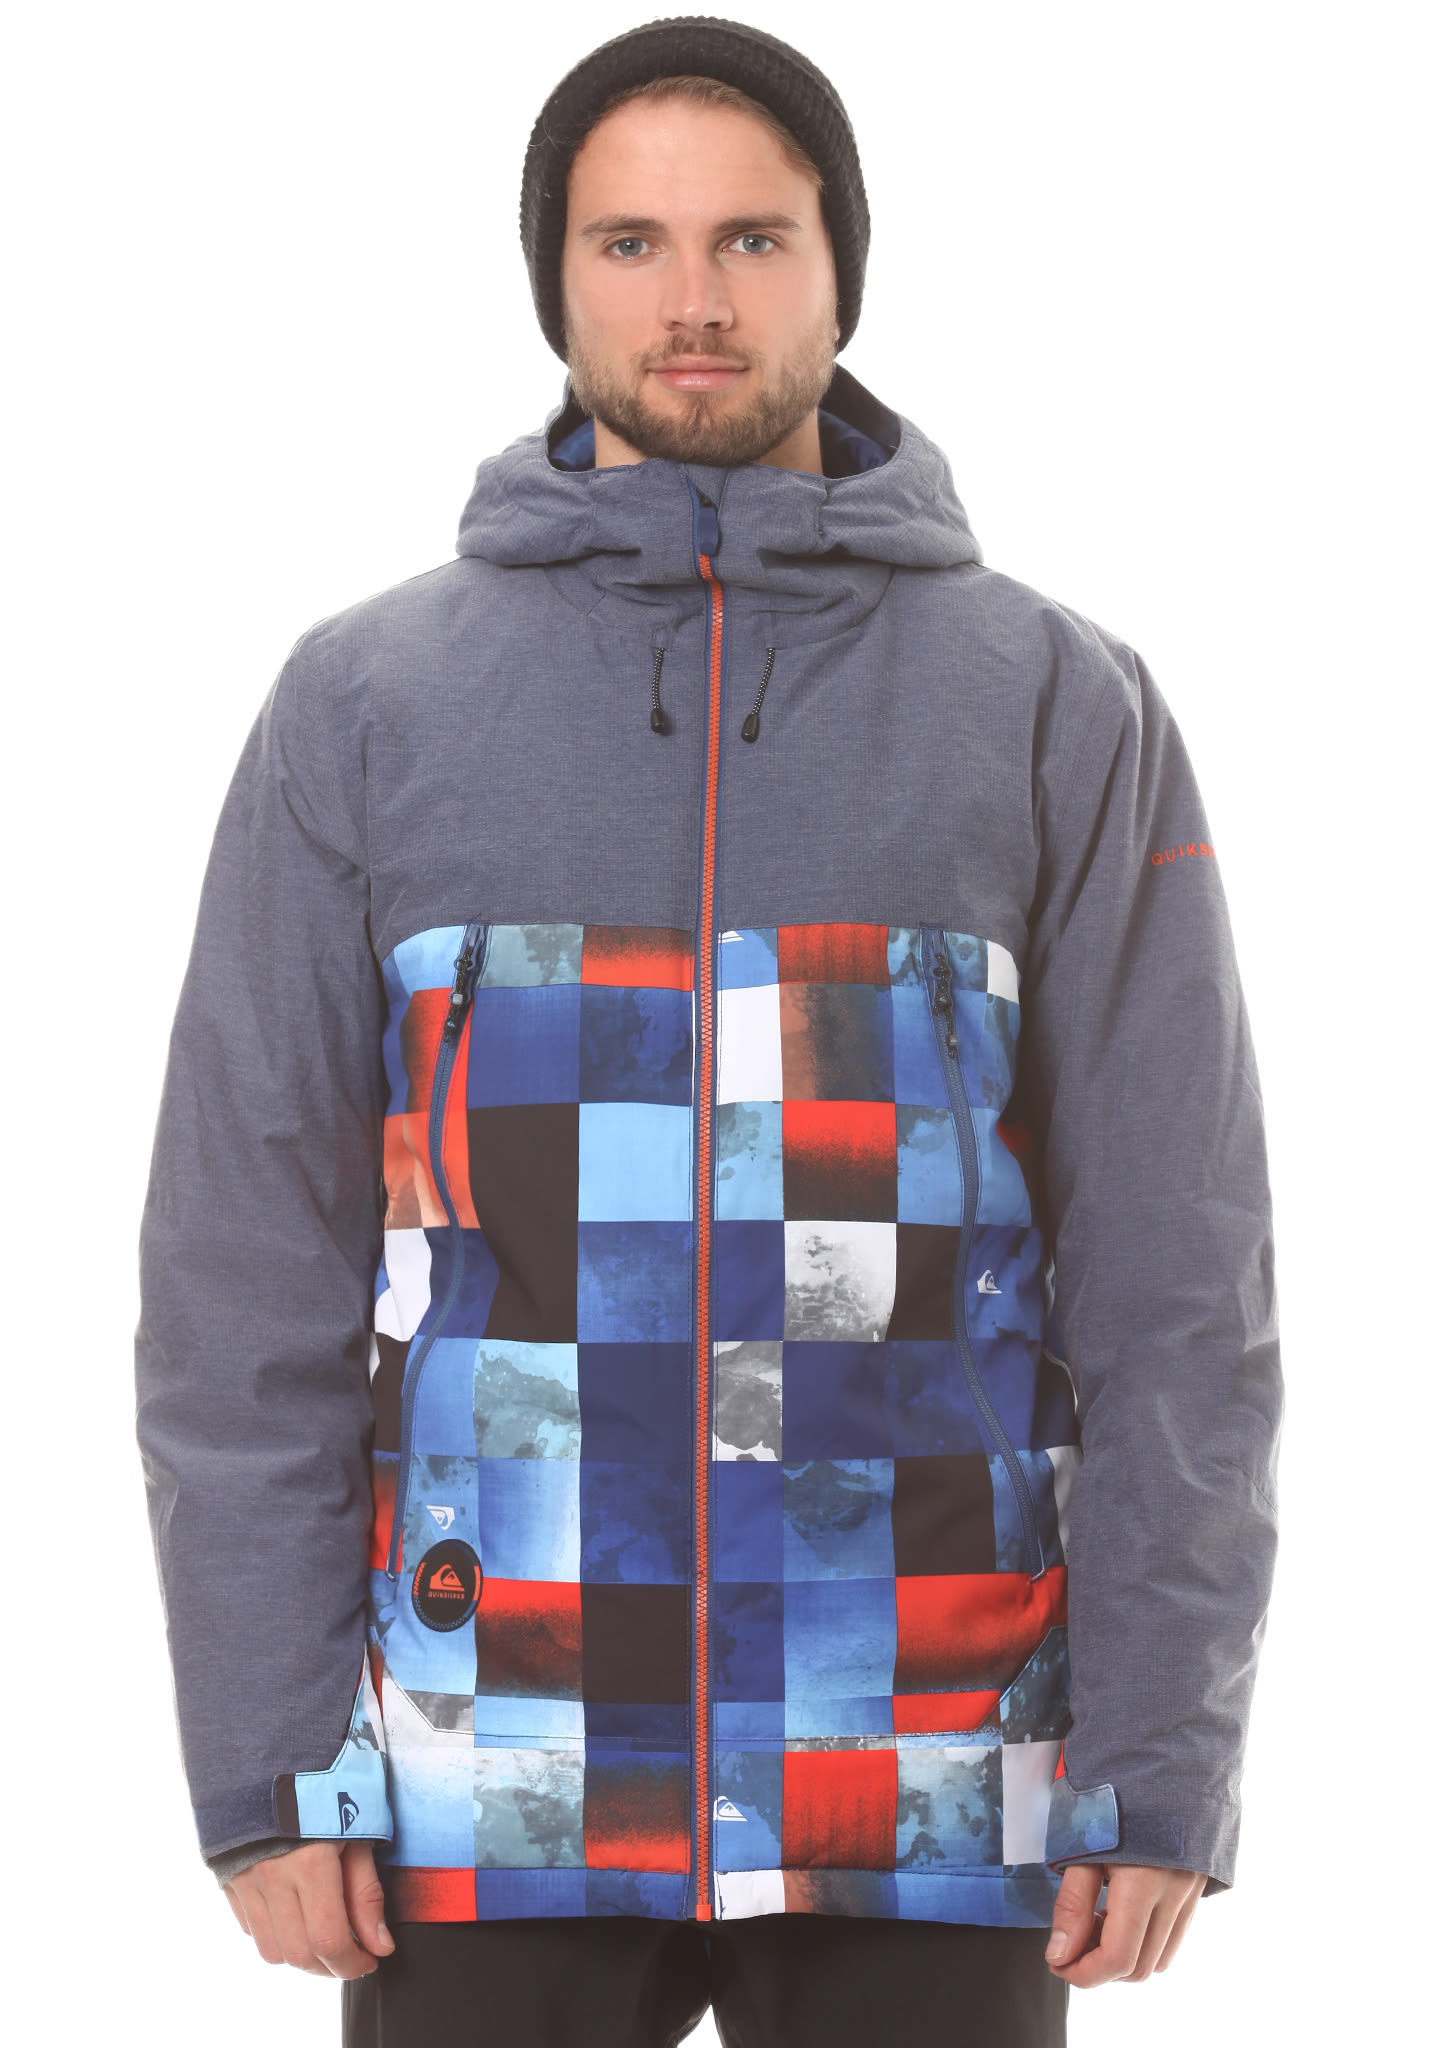 a3304fd8a31 Quiksilver Sierra - Snowboard Jacket for Men - Blue - Planet Sports